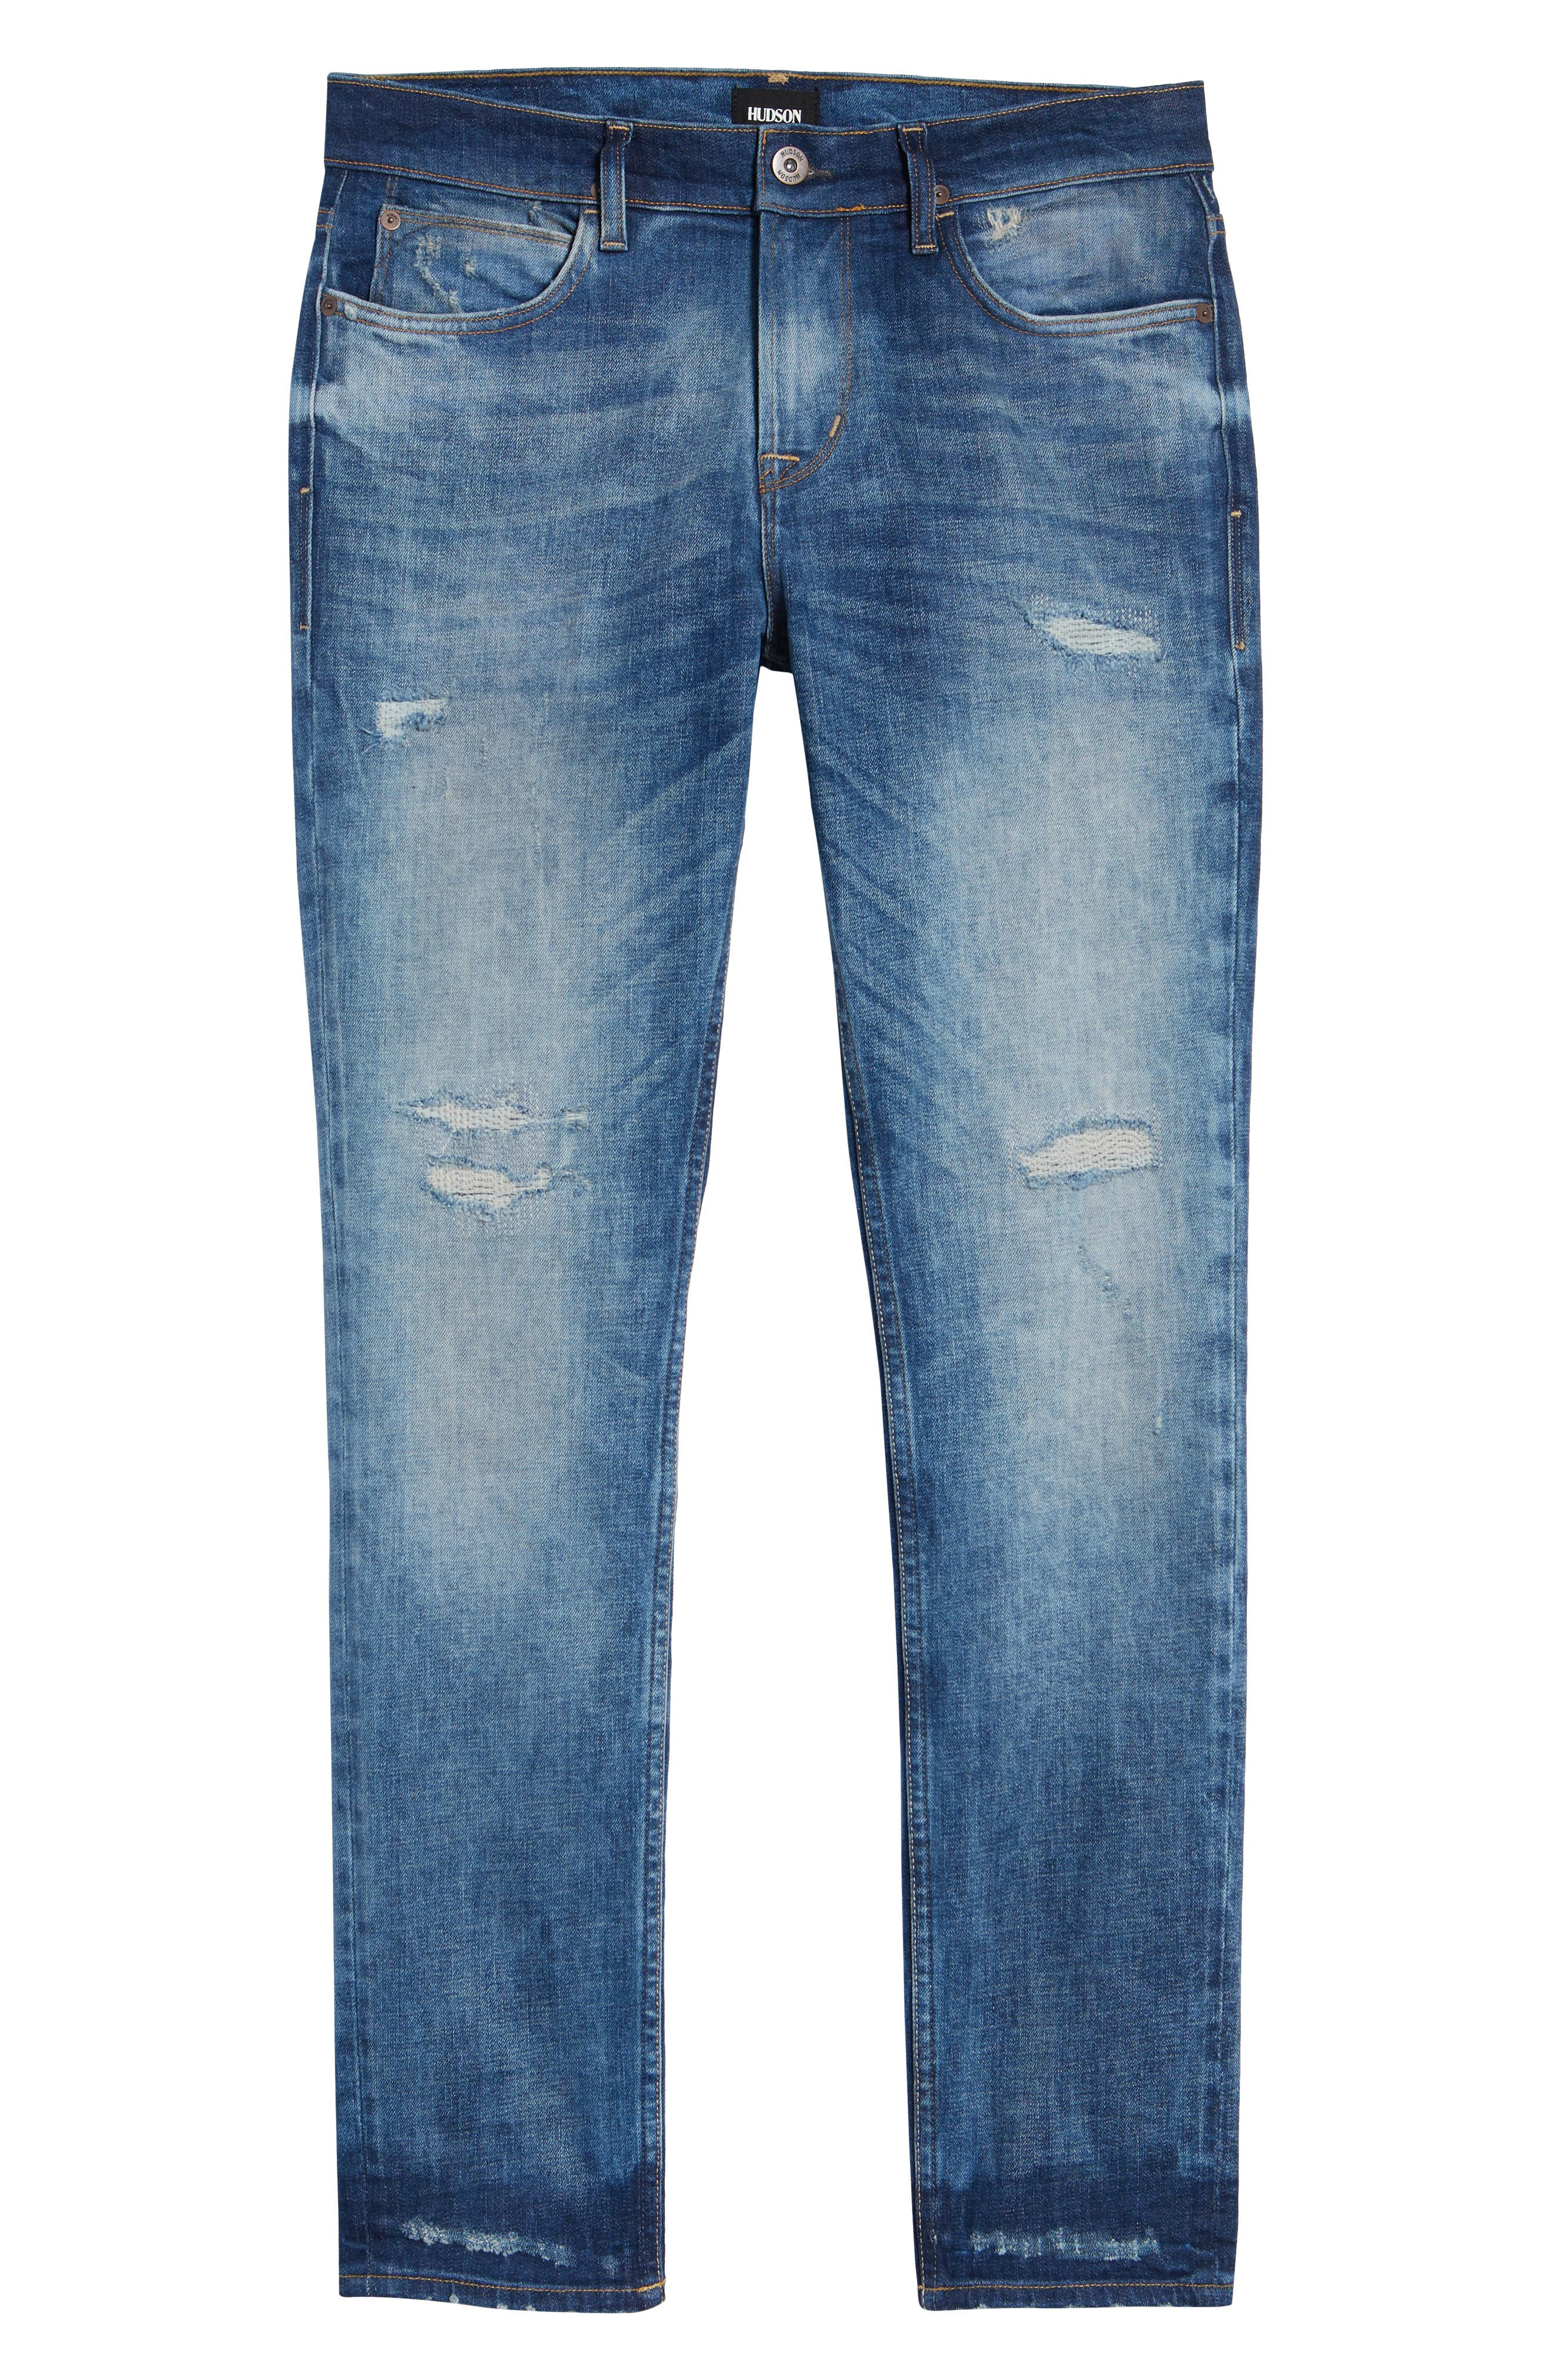 Axl Skinny Fit Jeans,                             Alternate thumbnail 6, color,                             RIDE OUT